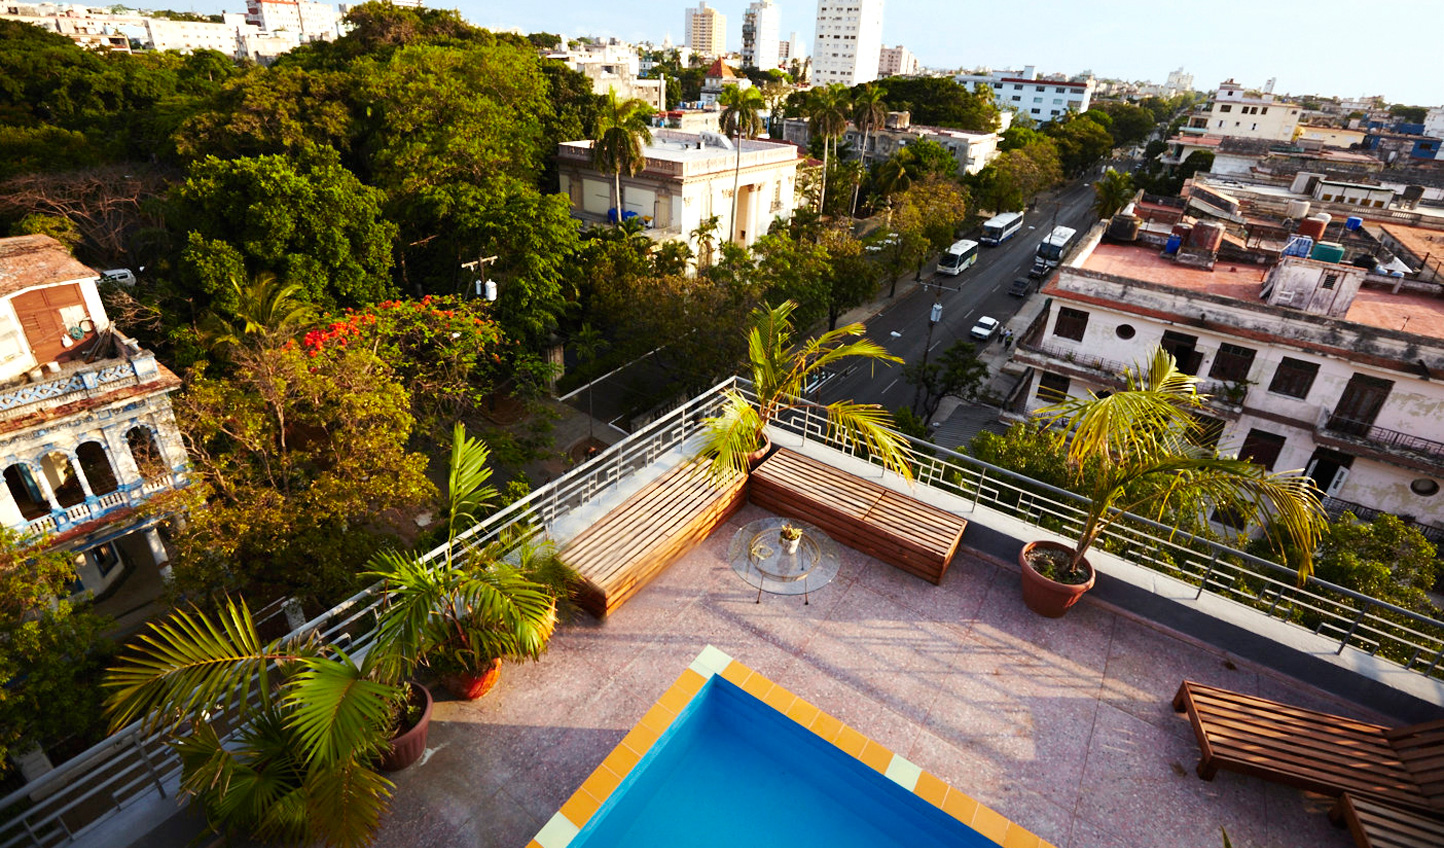 Take a dip in your private rooftop pool and enjoy views over Havana